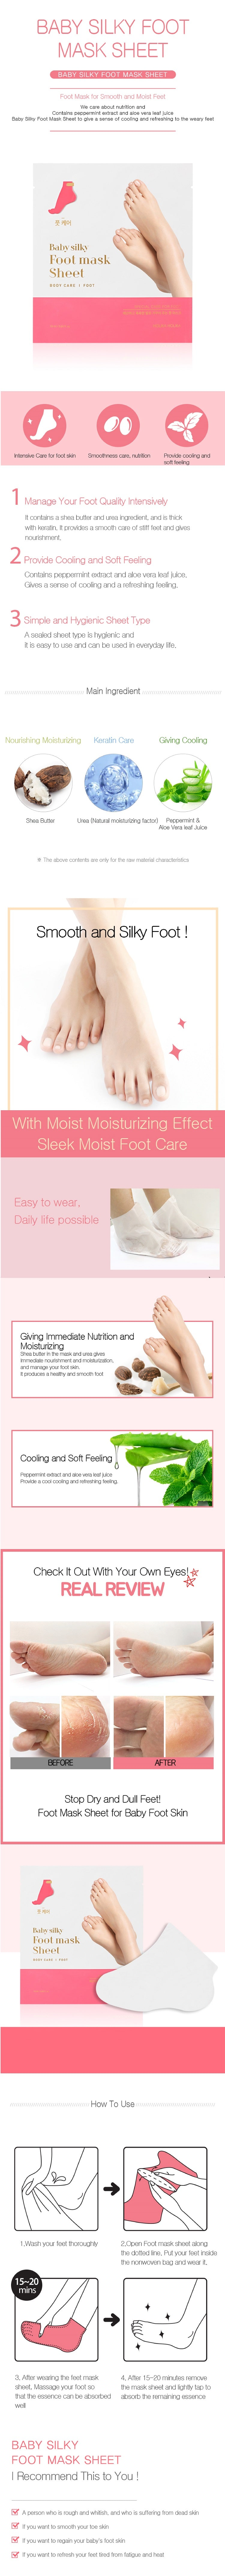 Masker Kaki Korea | Baby Silky Foot Mask Sheet